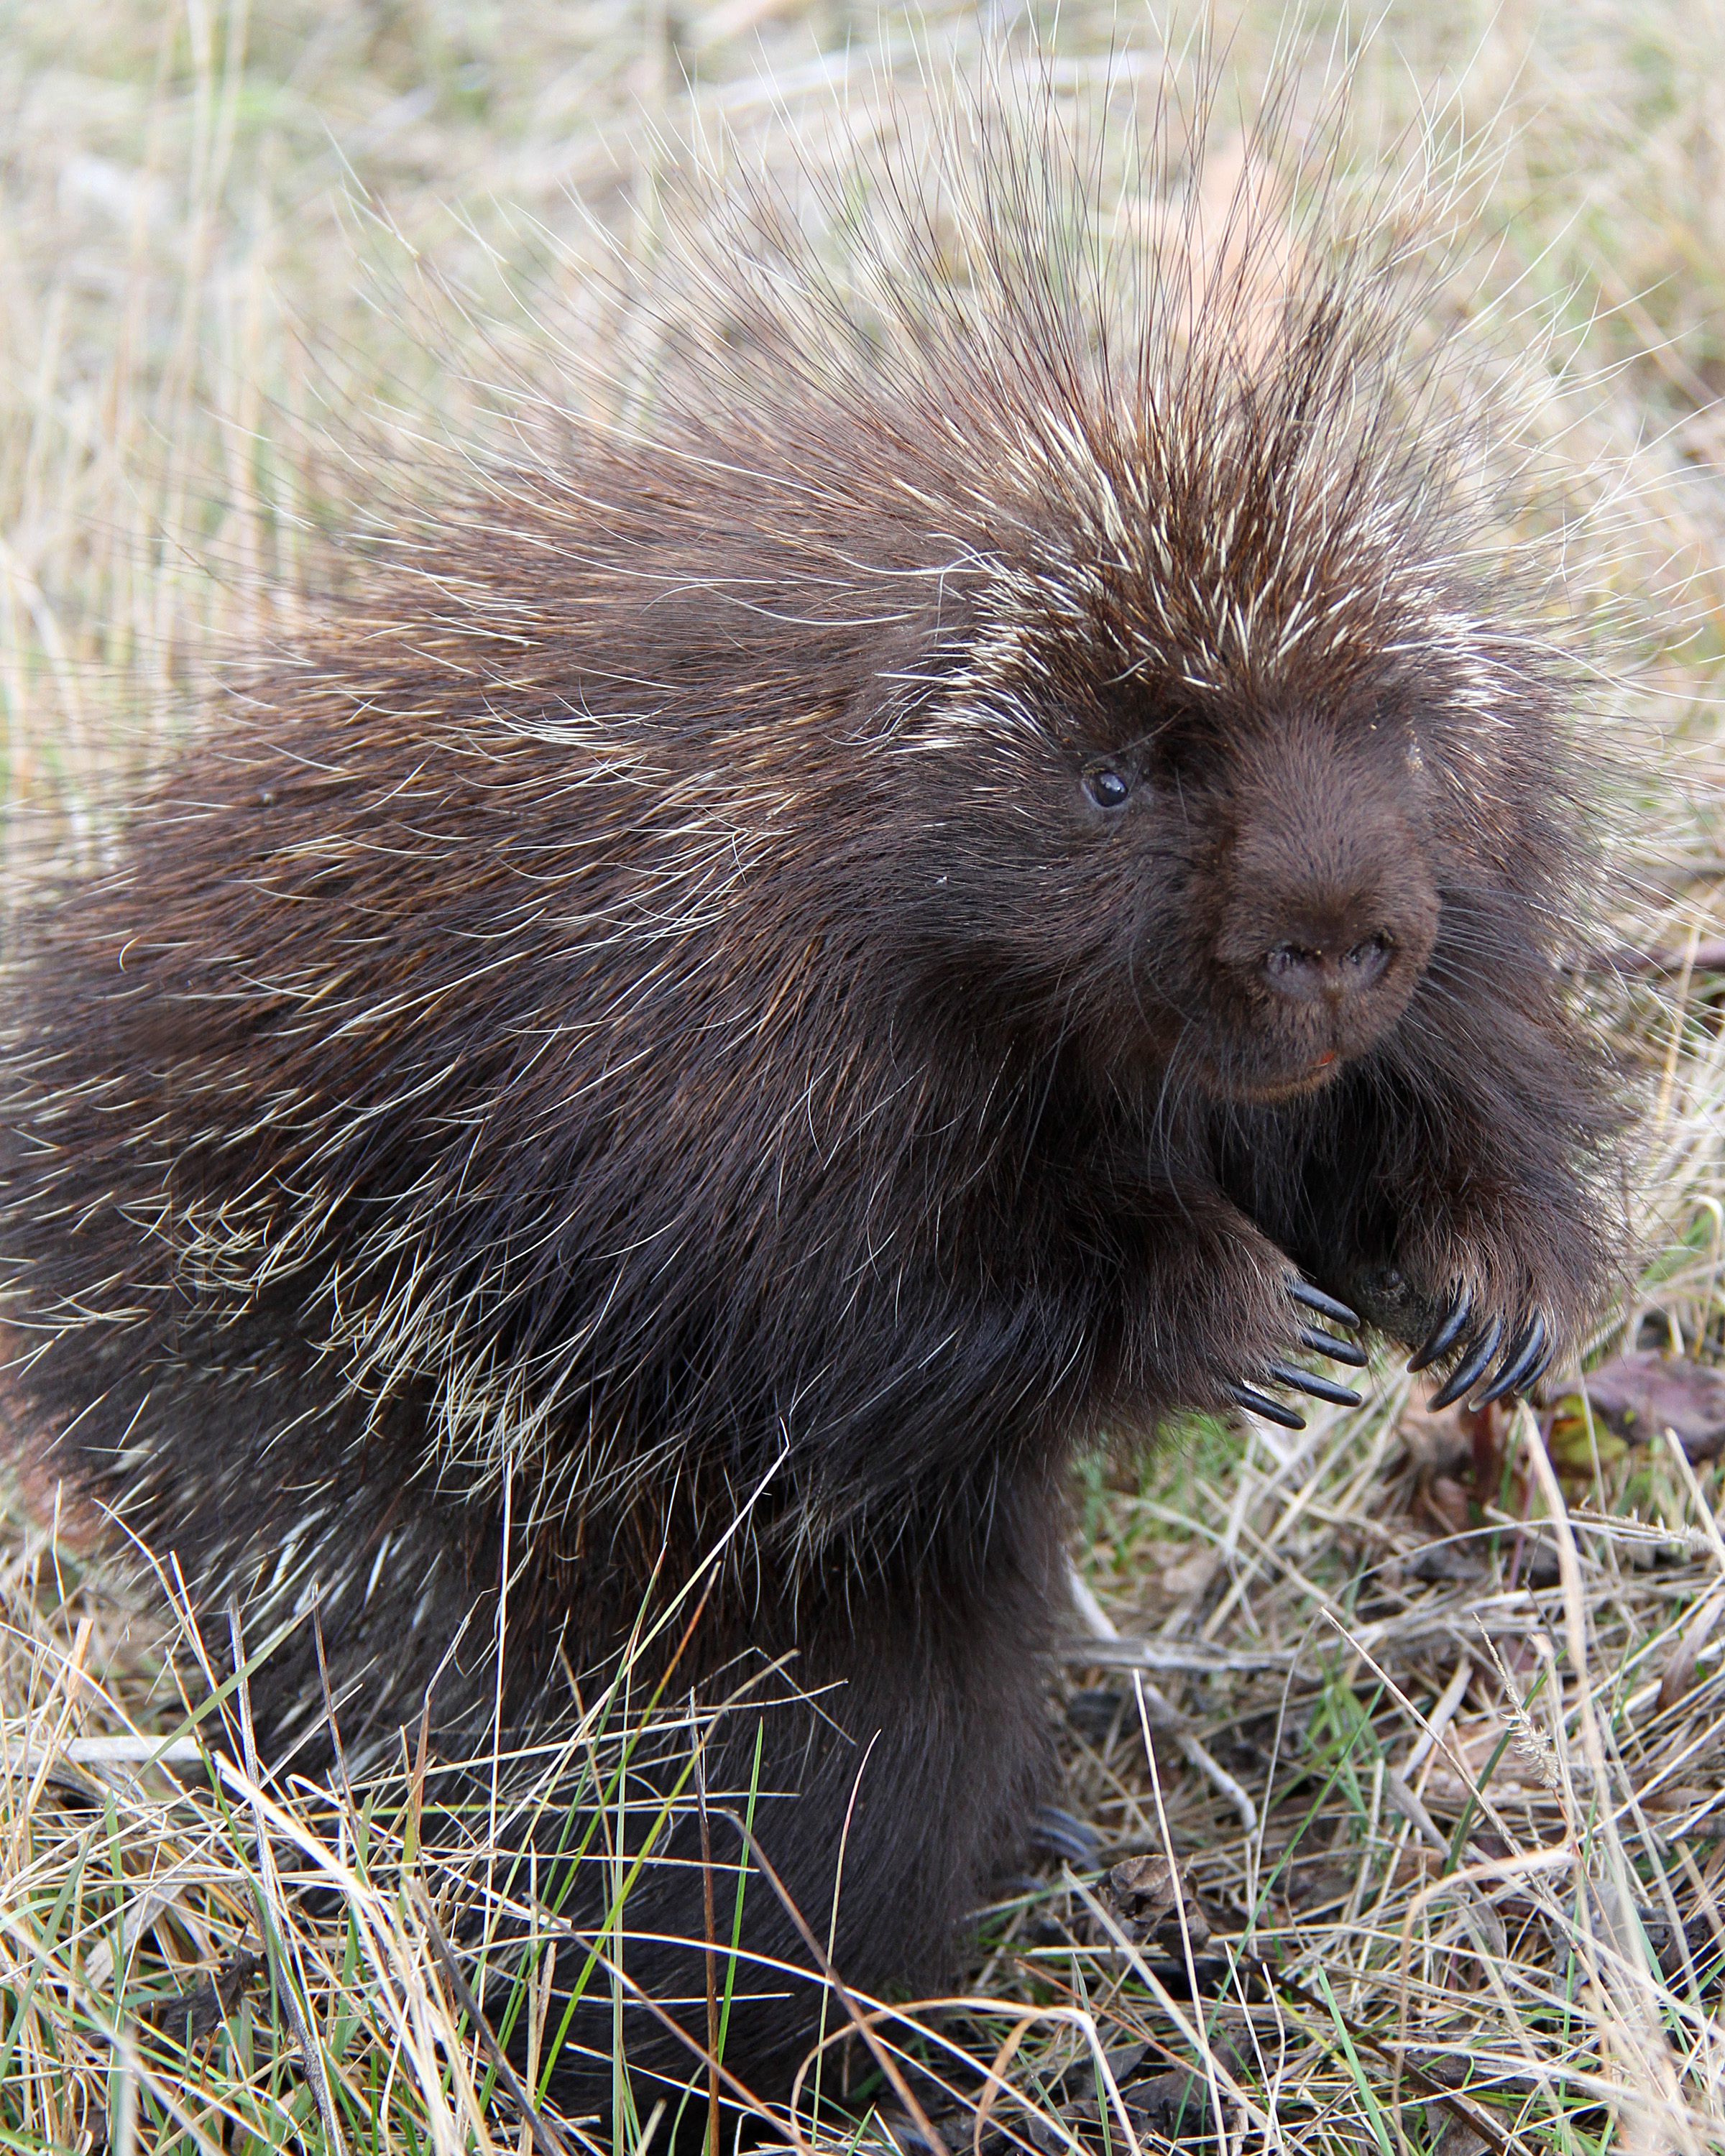 Porcupines – Welcome to a photographic journey through the woods ...